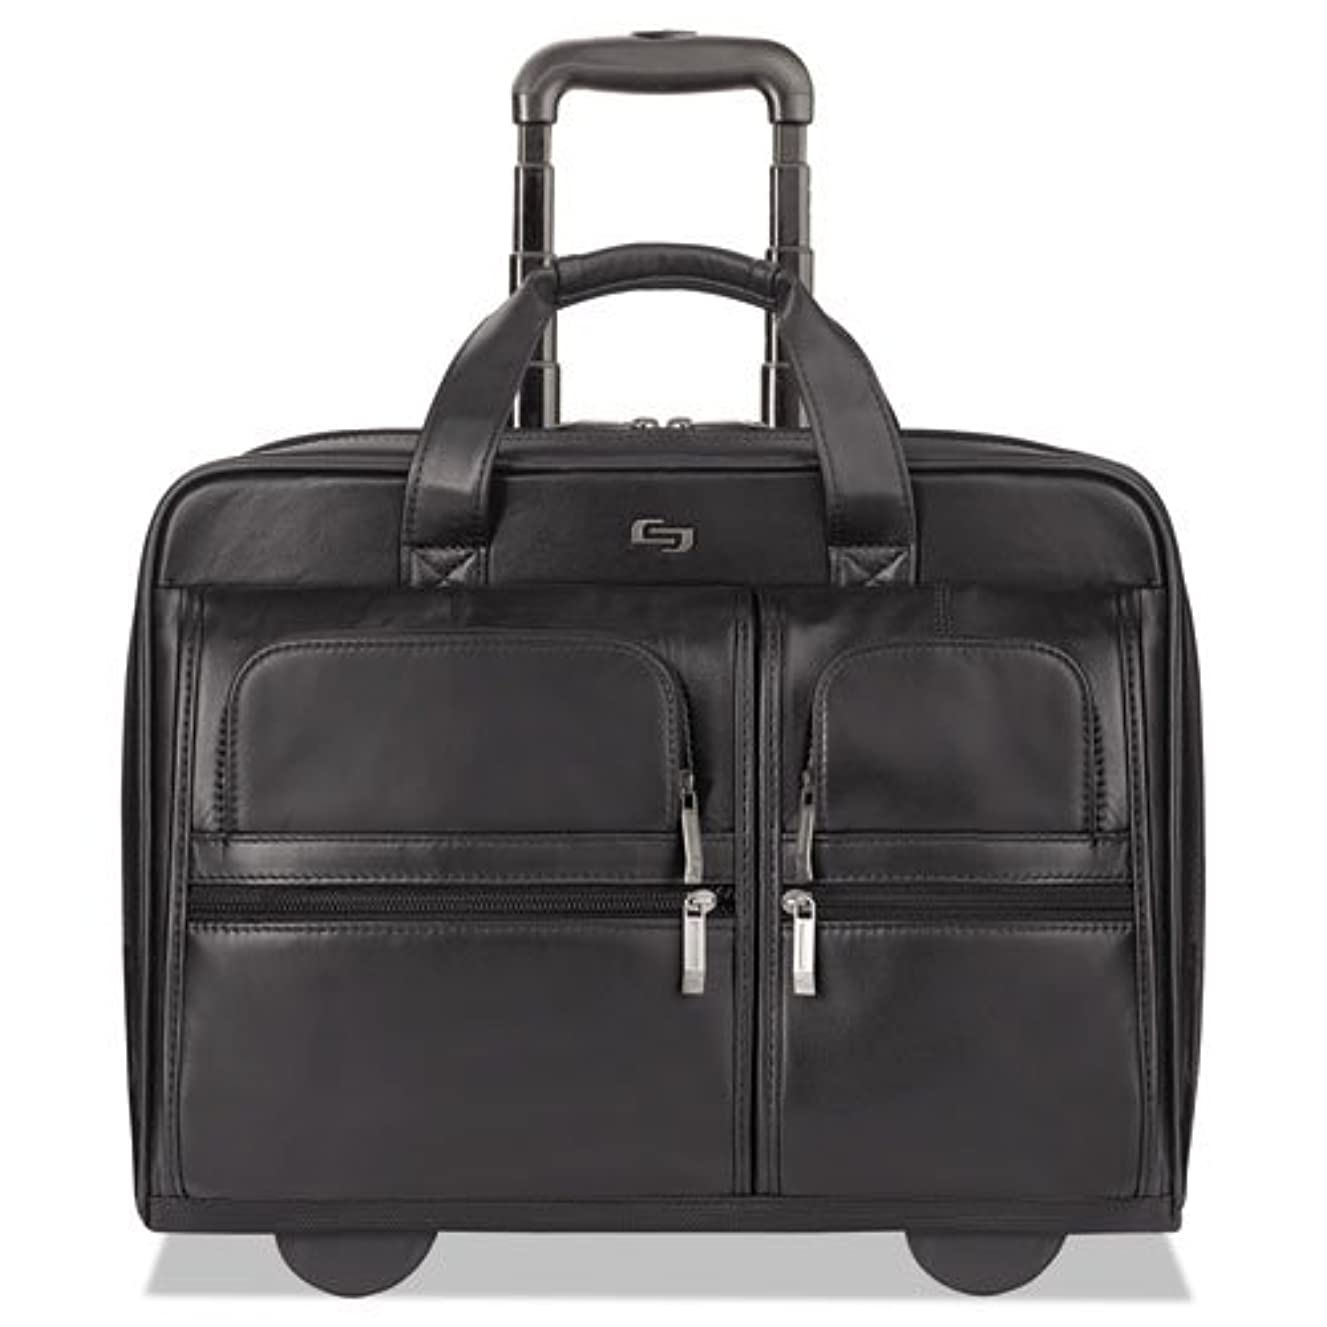 USLD9574 - Solo Classic Carrying Case for 15.6 Notebook - Black